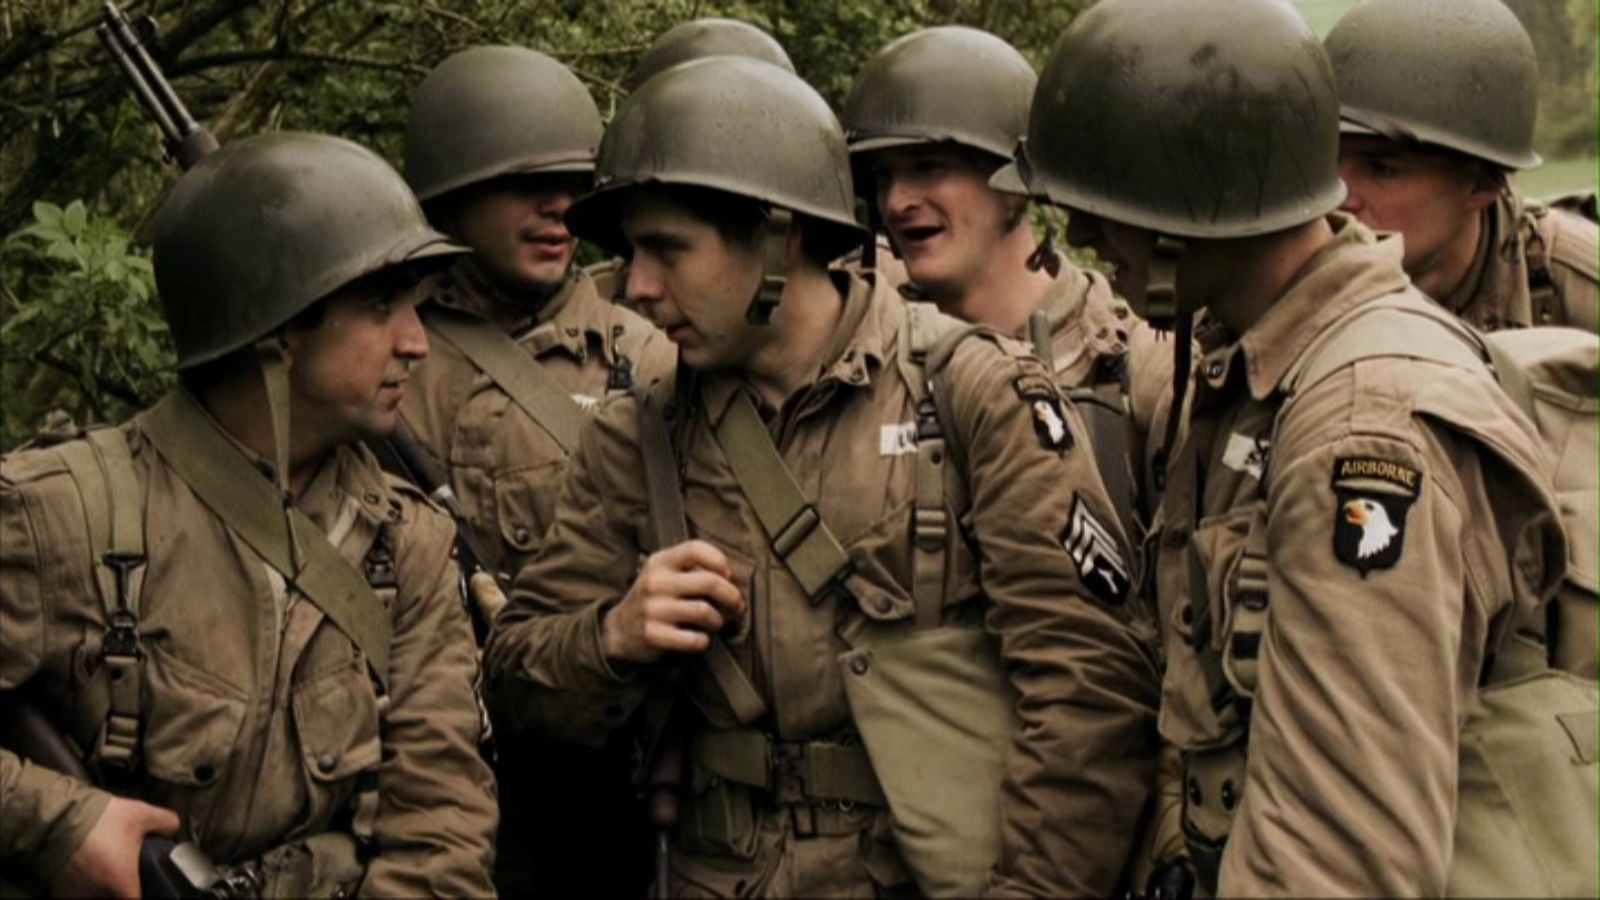 Part 1 Currahee Band Of Brothers Image 12587421 Fanpop